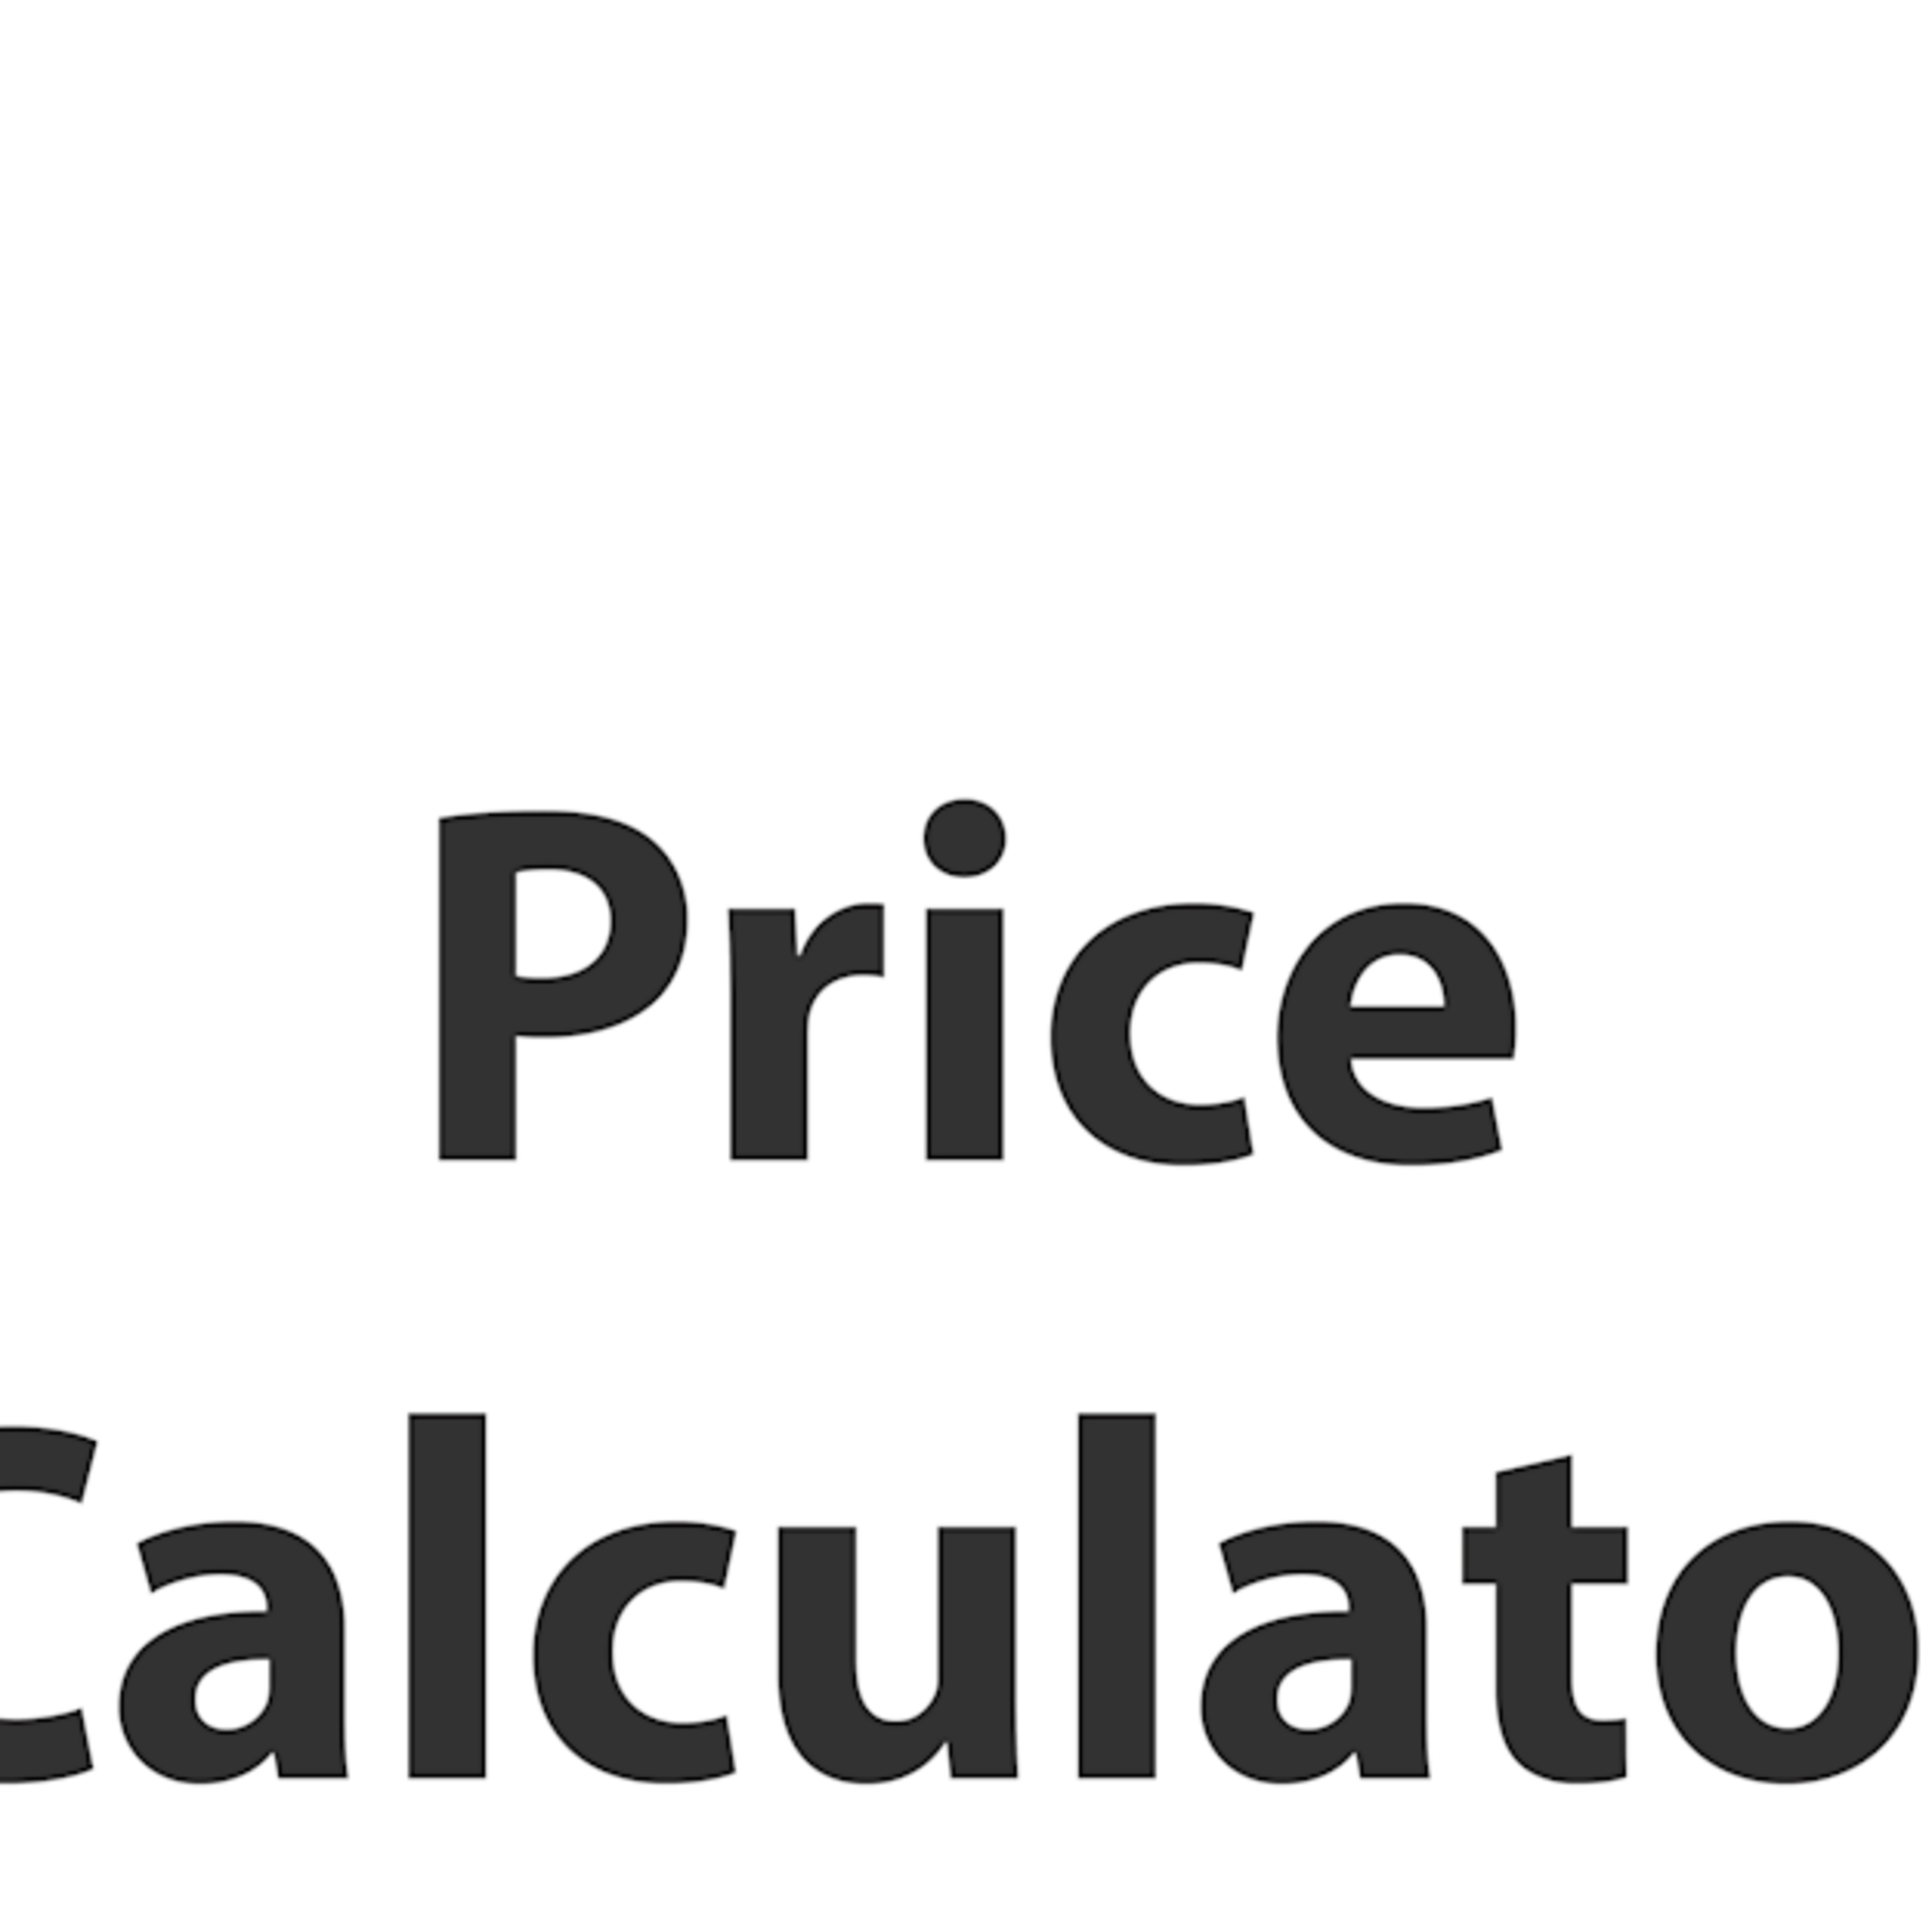 Price calculator size example prd7o7